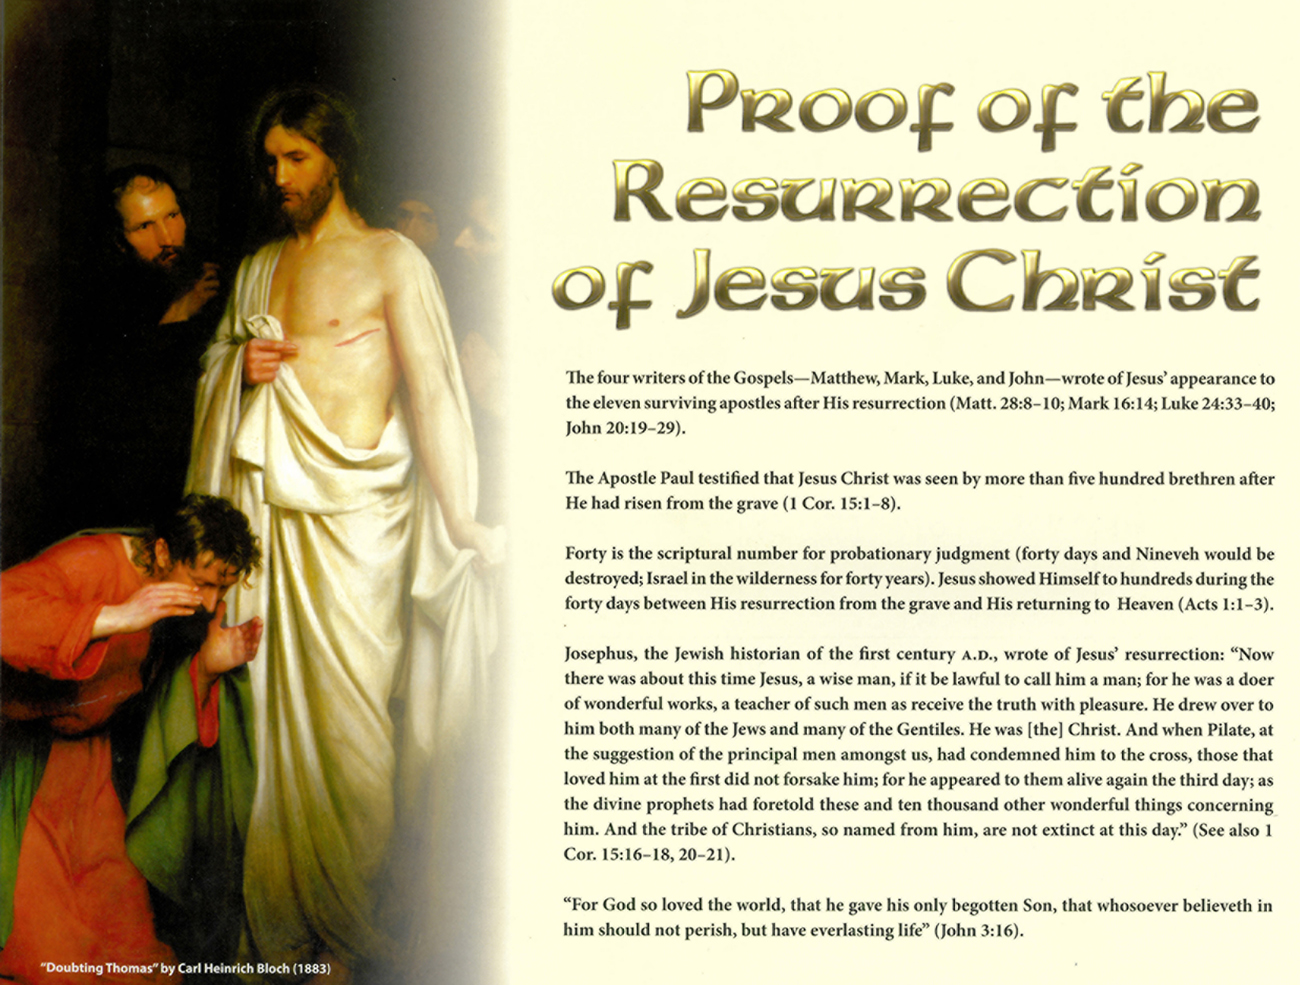 2013 Prophecy Calendar: September - Proof of the Resurrection of Jesus Christ